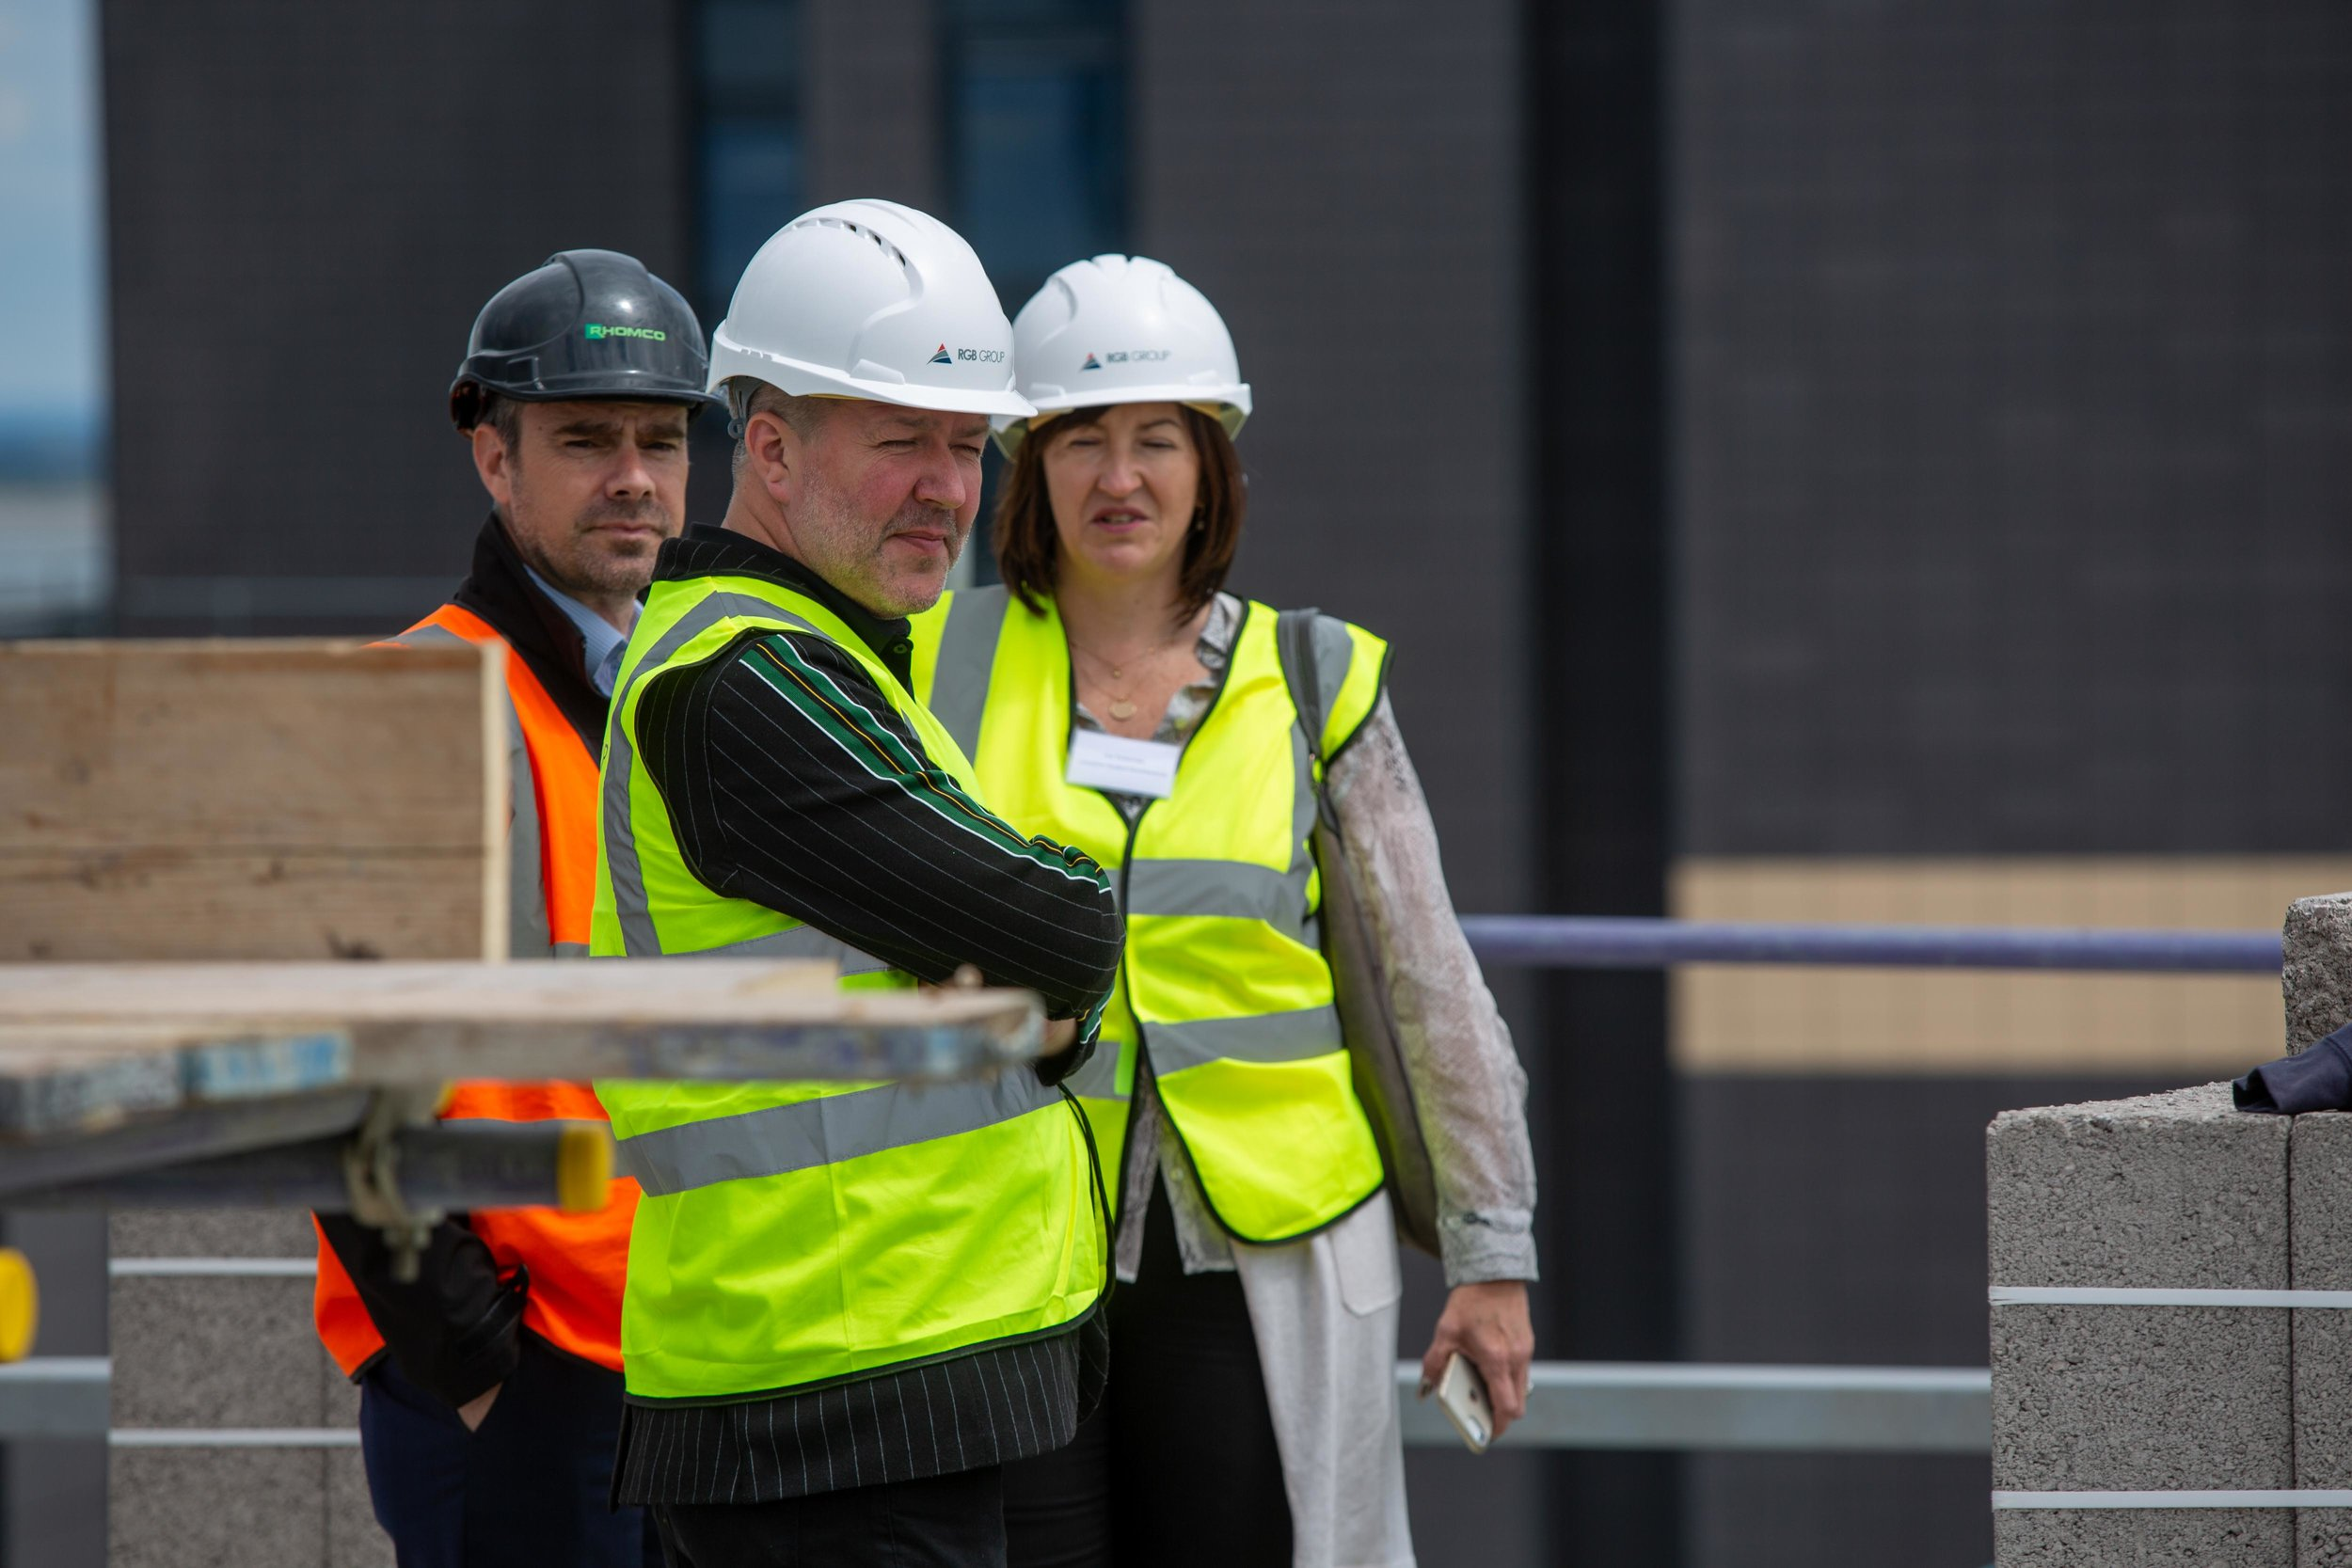 Stanhope House Topping Out 28.05.19 - Solent Sky Services--76.JPG